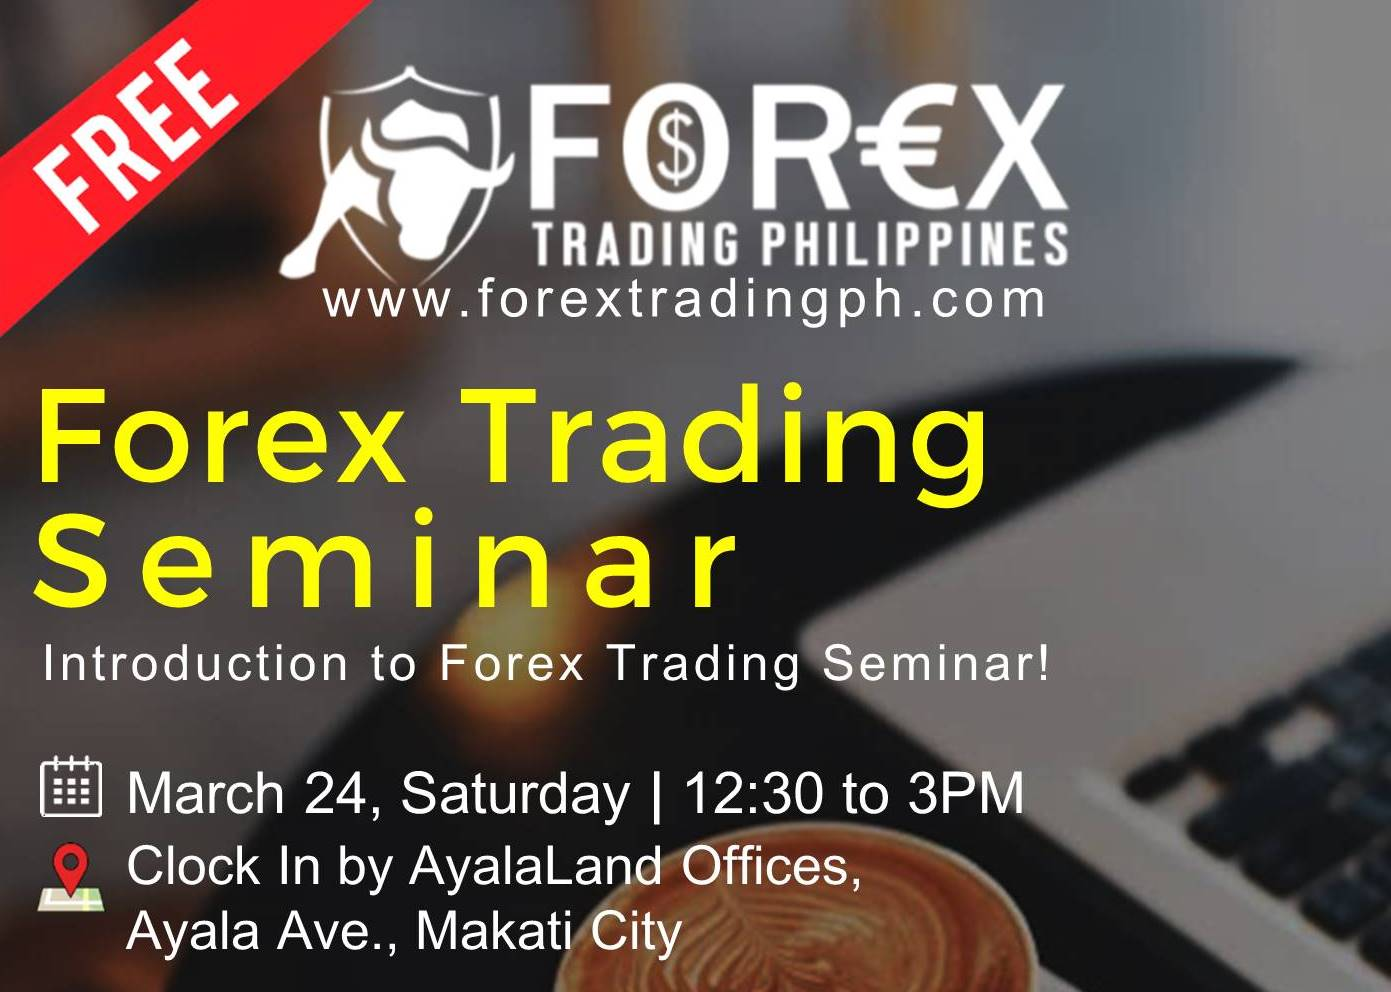 Registered forex brokers in philippines